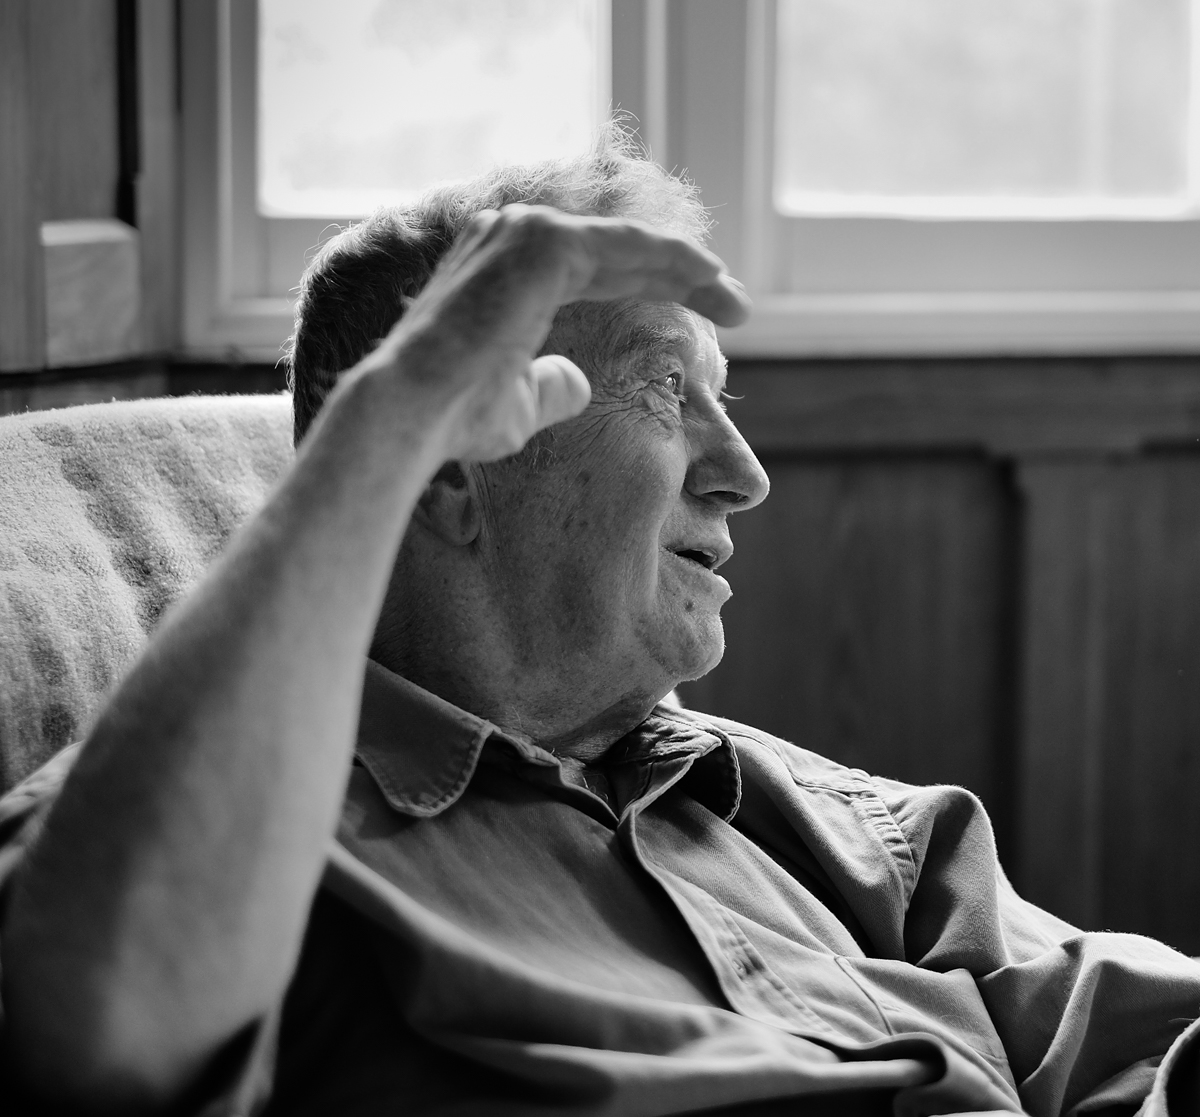 Peter Jones talking with Ffoton, August 2016. Image by Brian Carroll